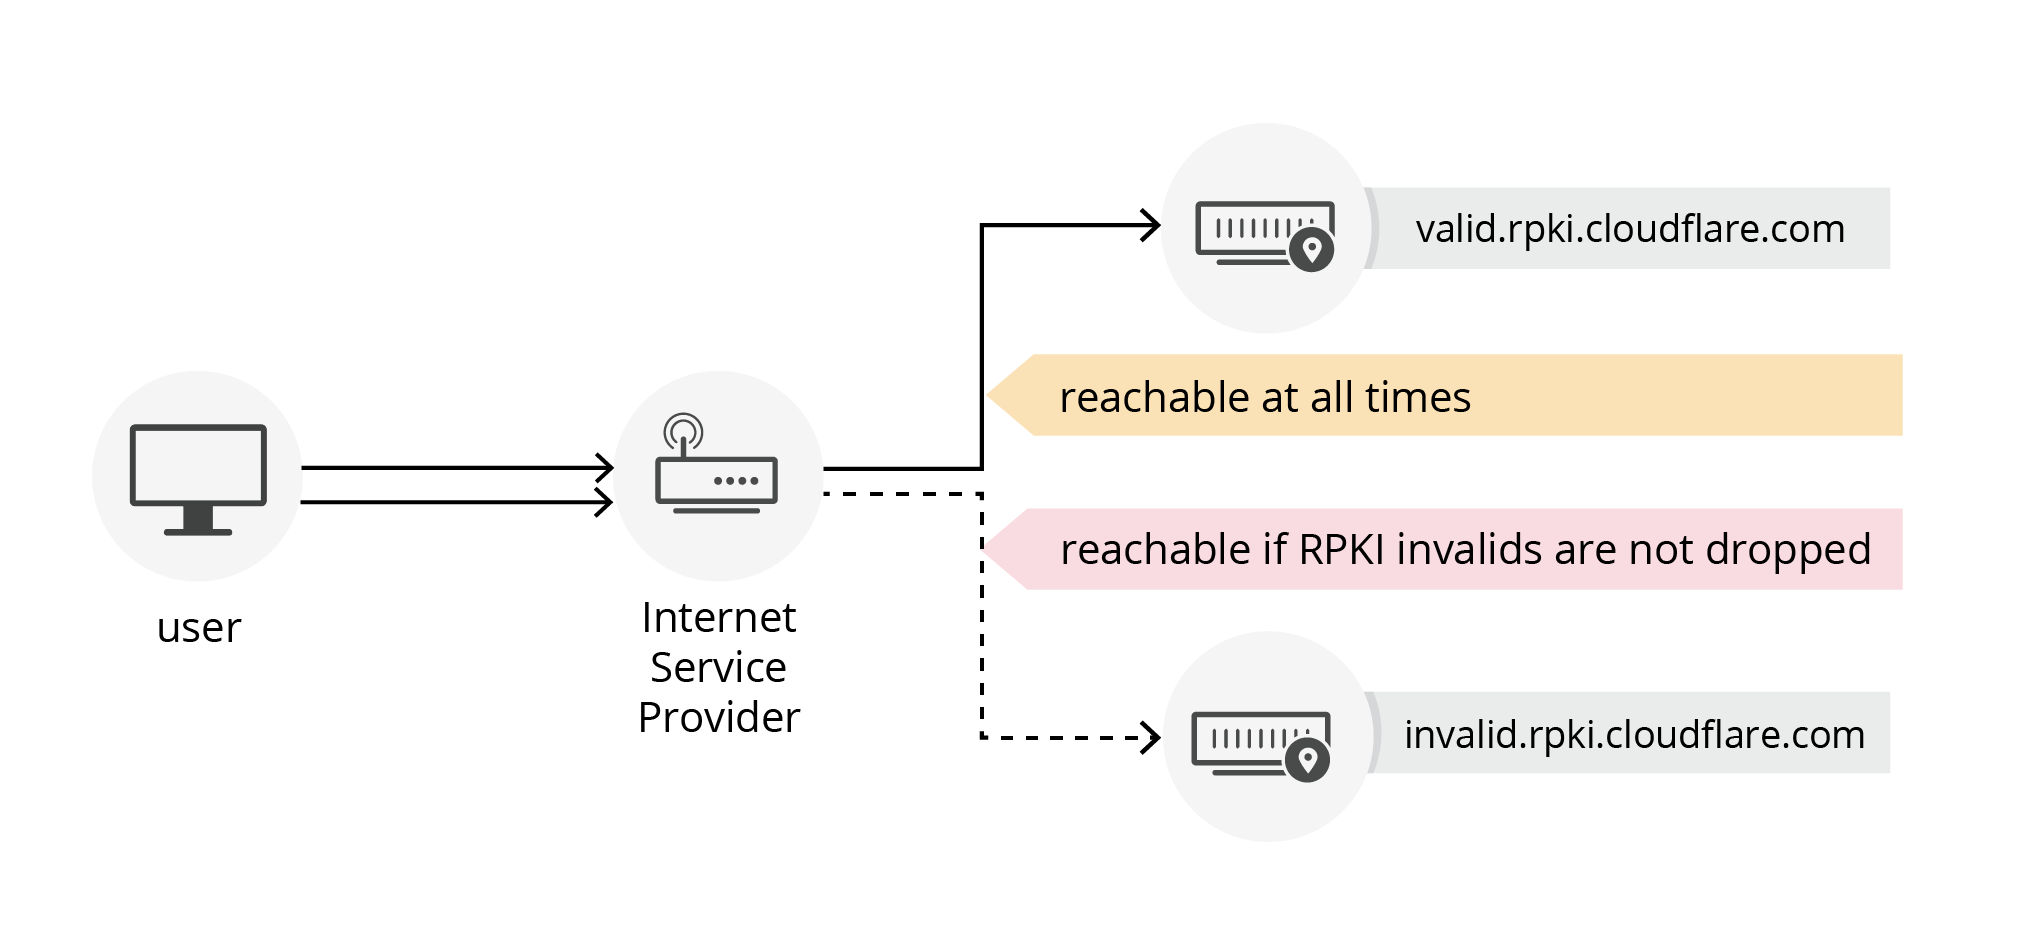 diagram showing a simple test of RPKI invalid reachability